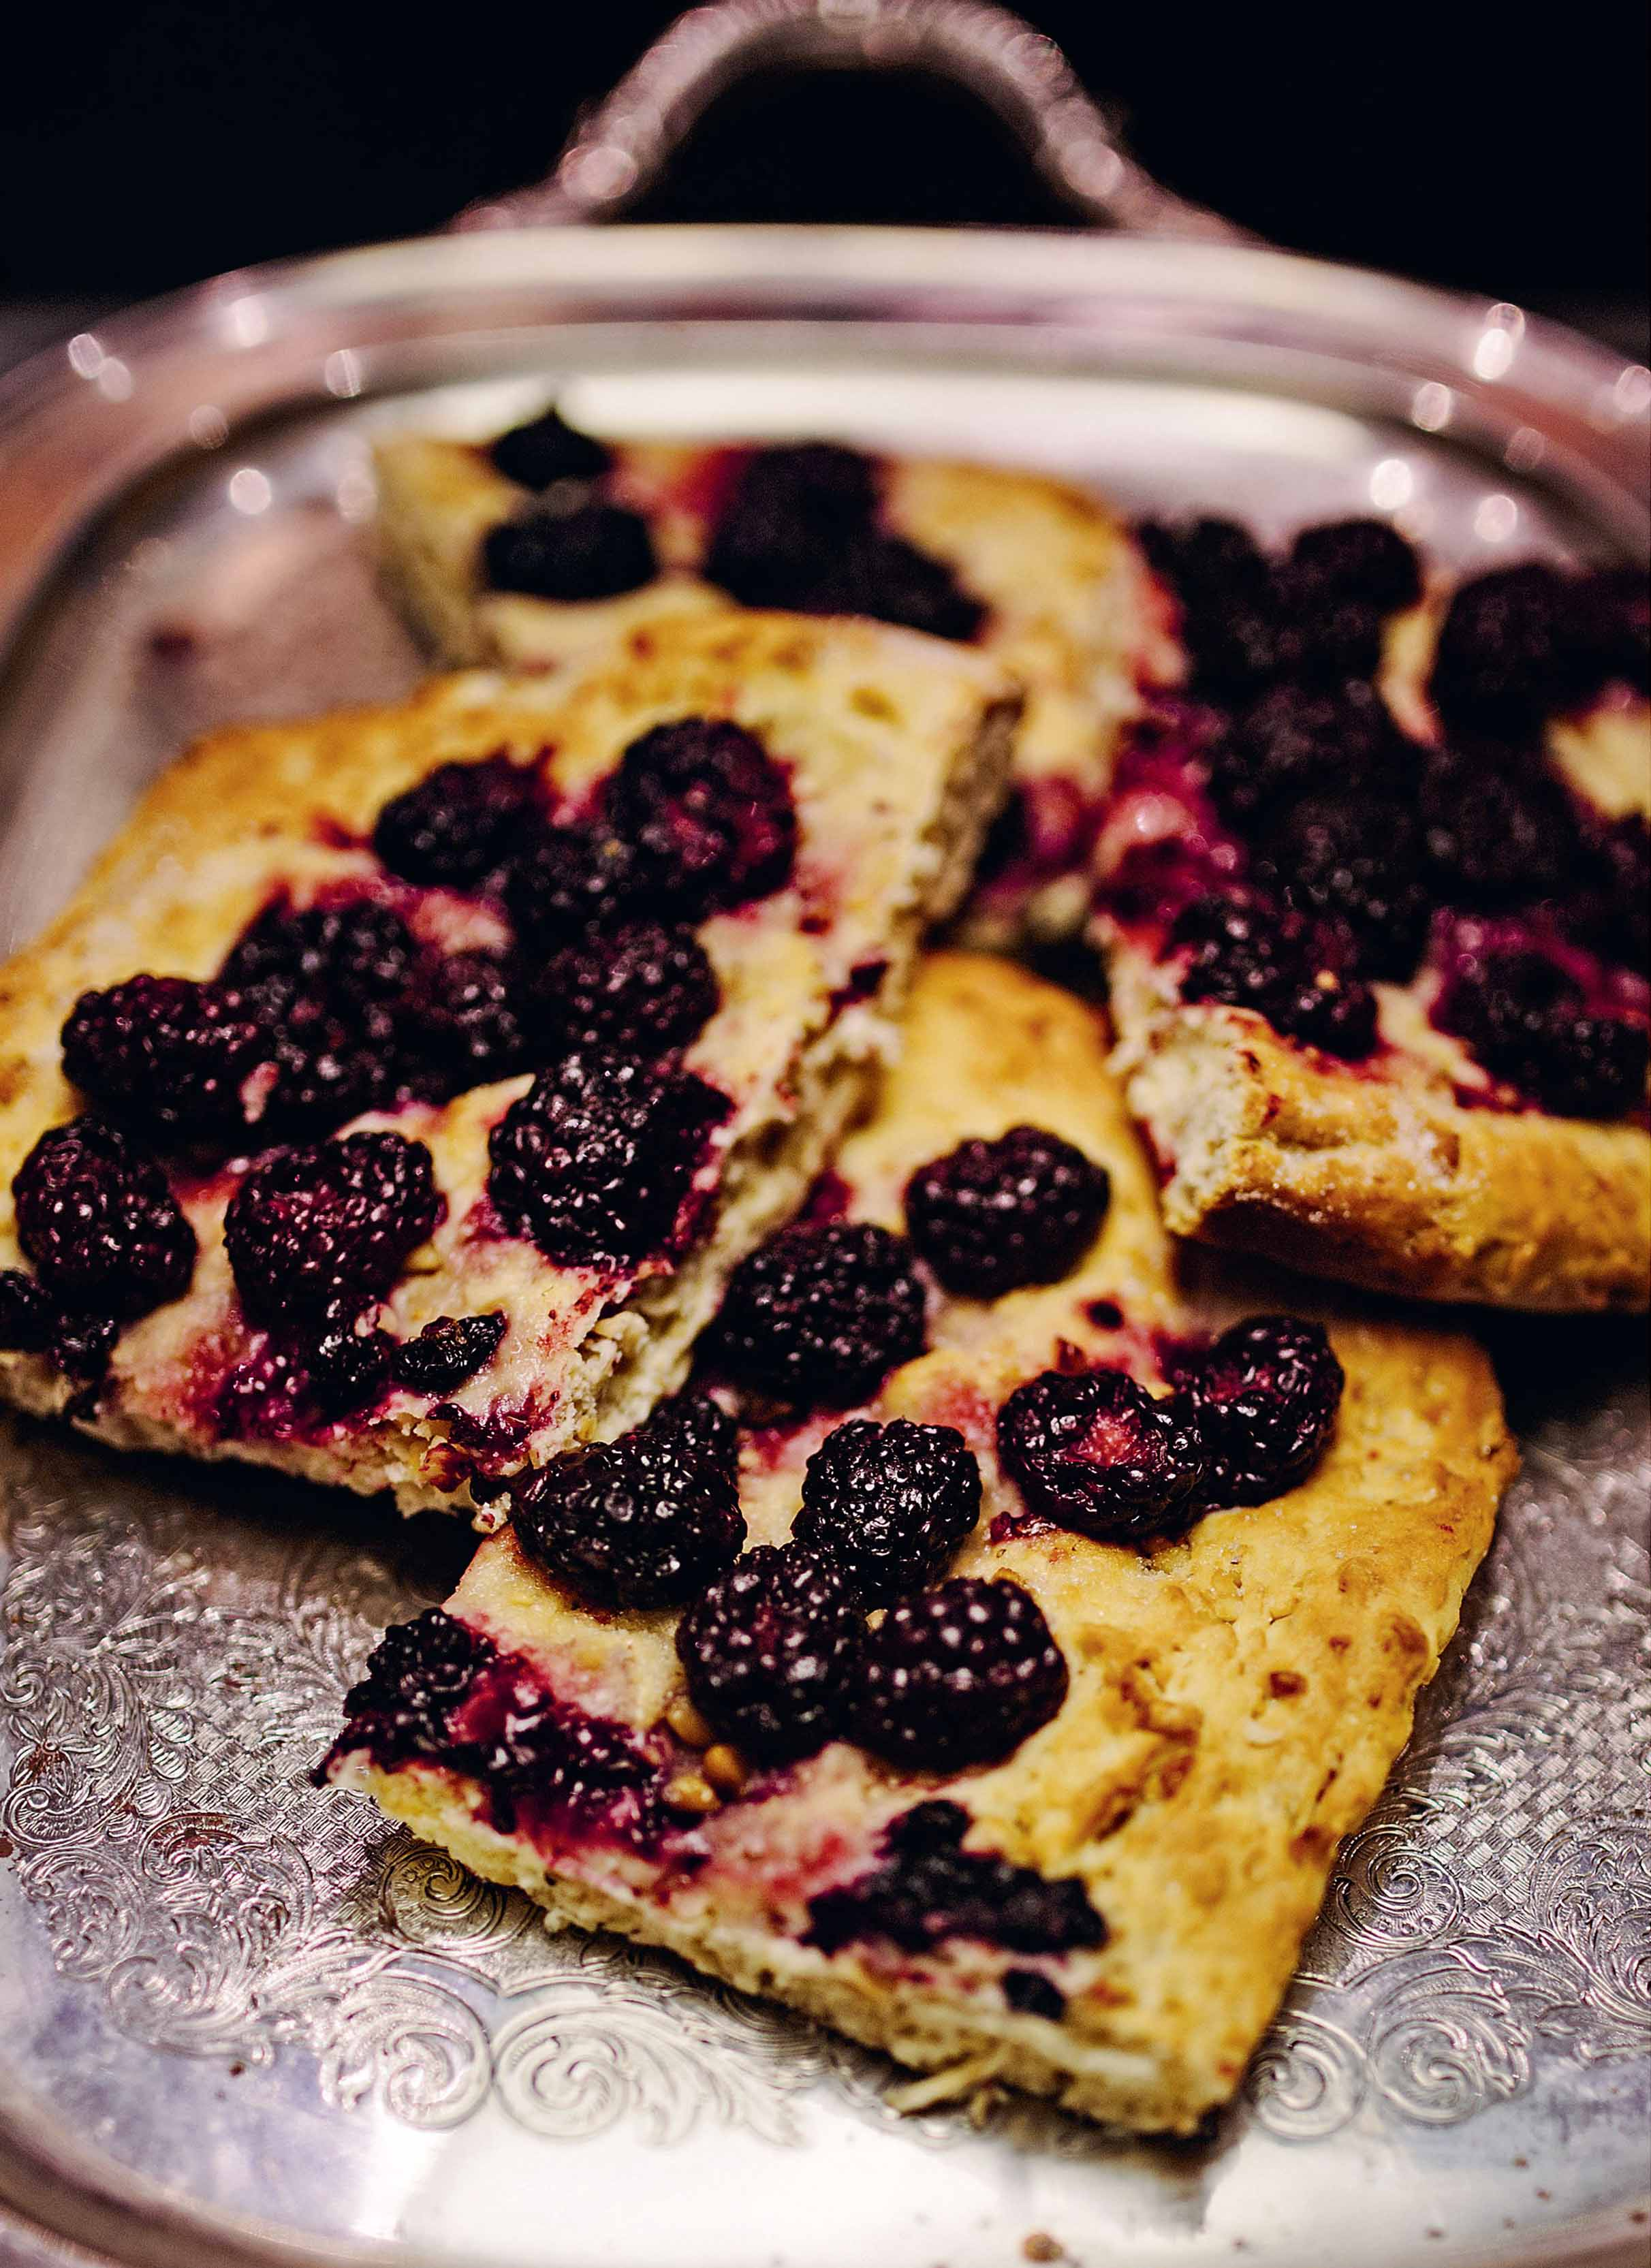 Crushed dough with hazelnuts and blackberries